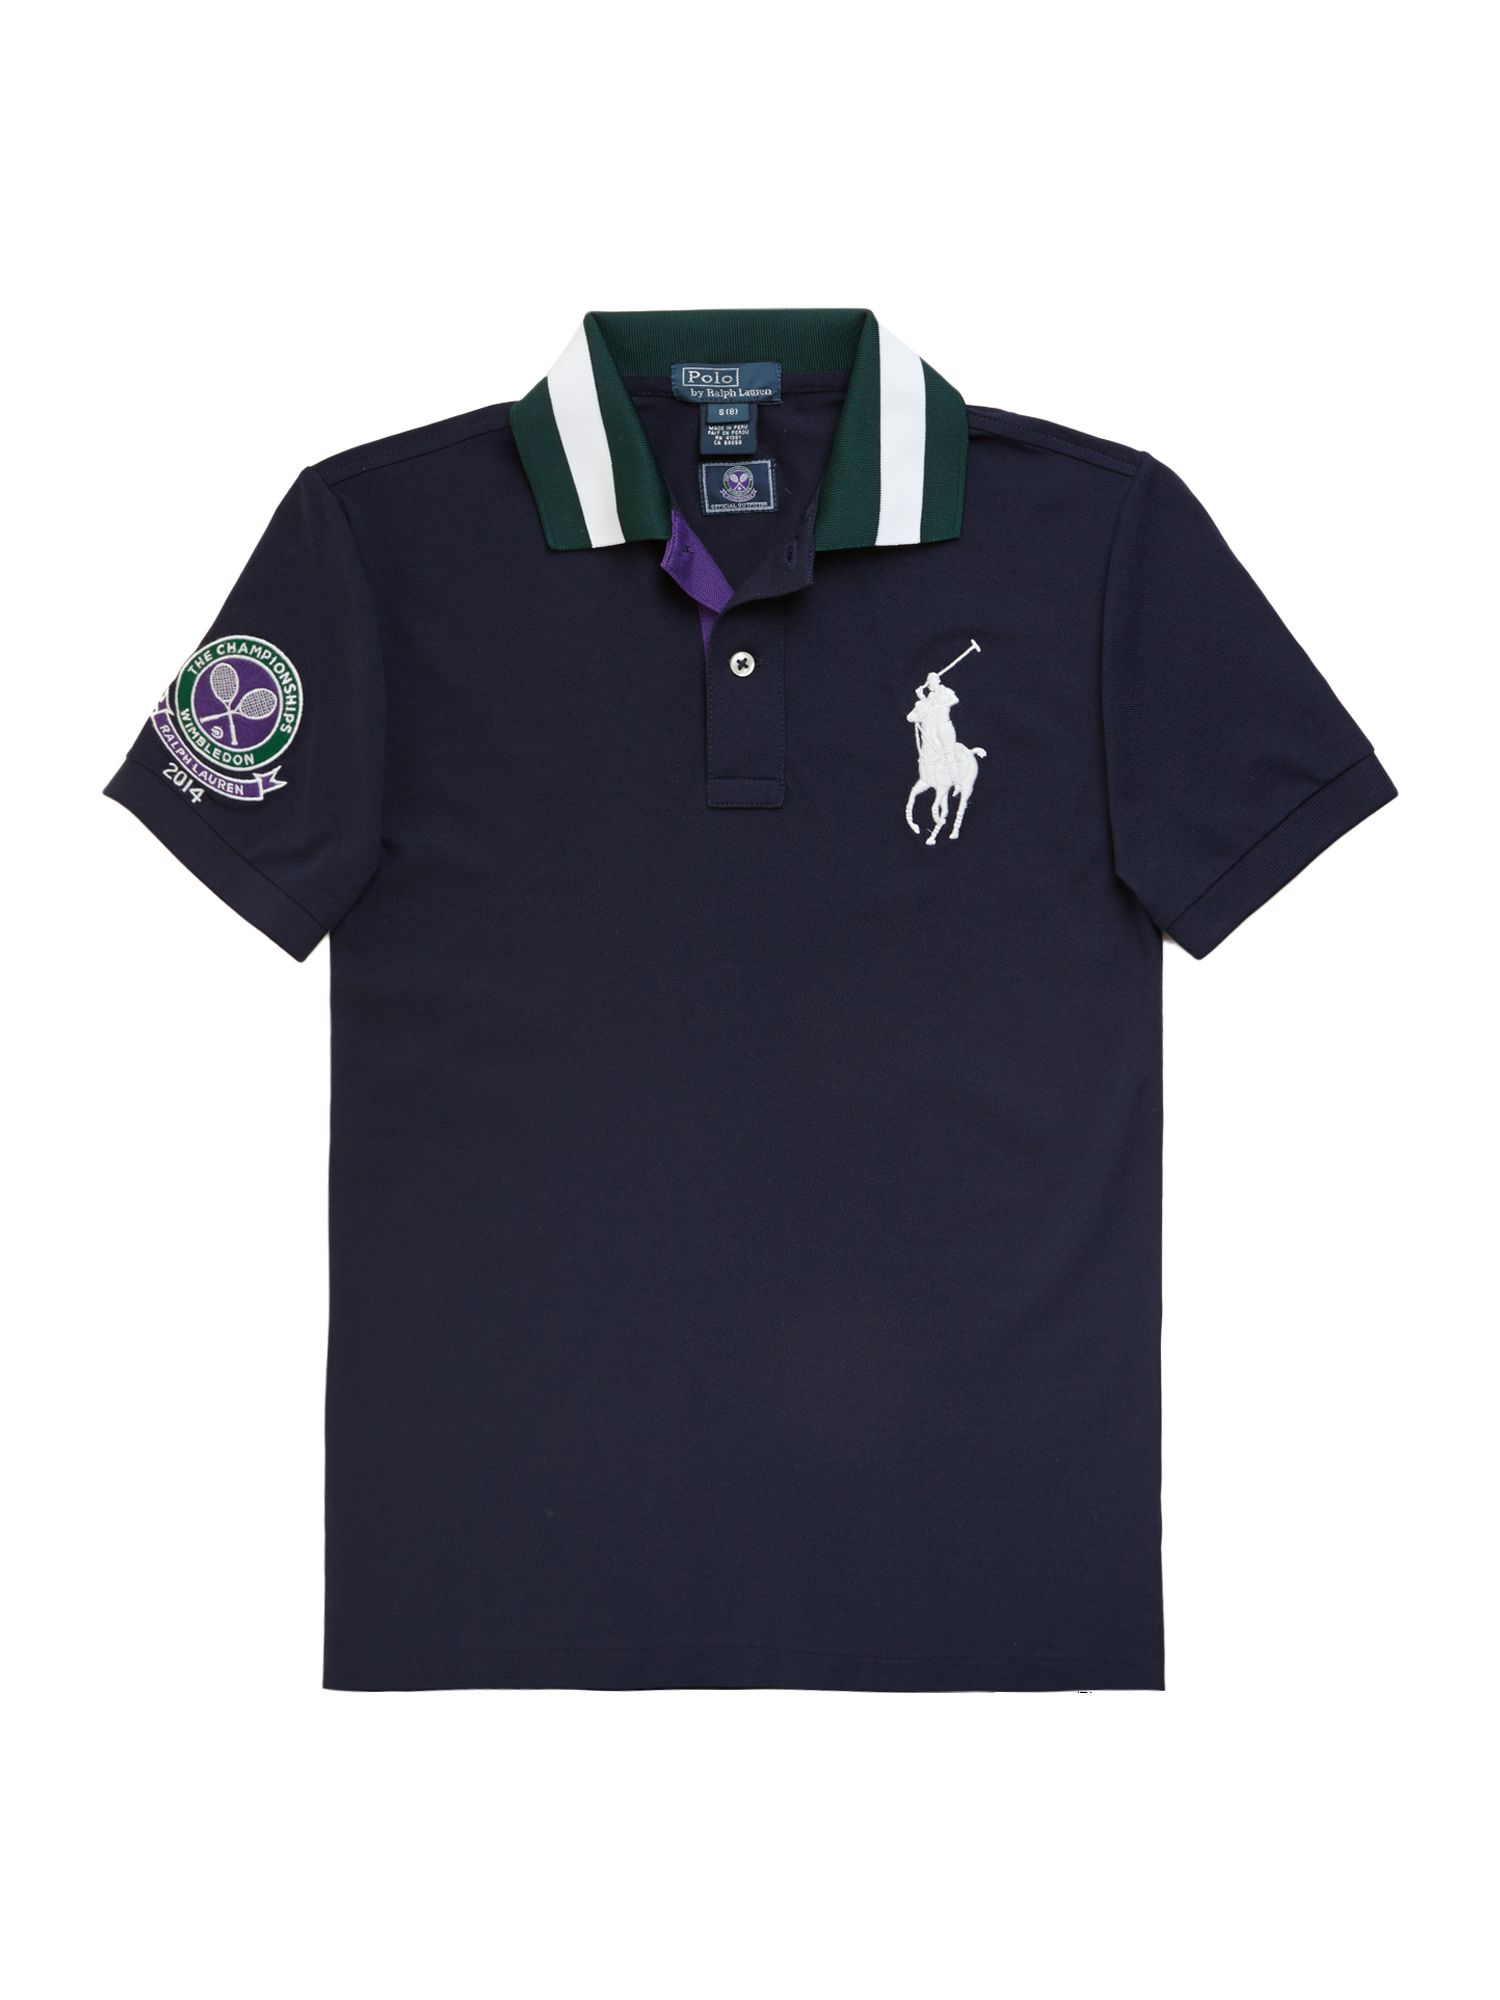 Kids official Wimbledon ball boy polo shirt